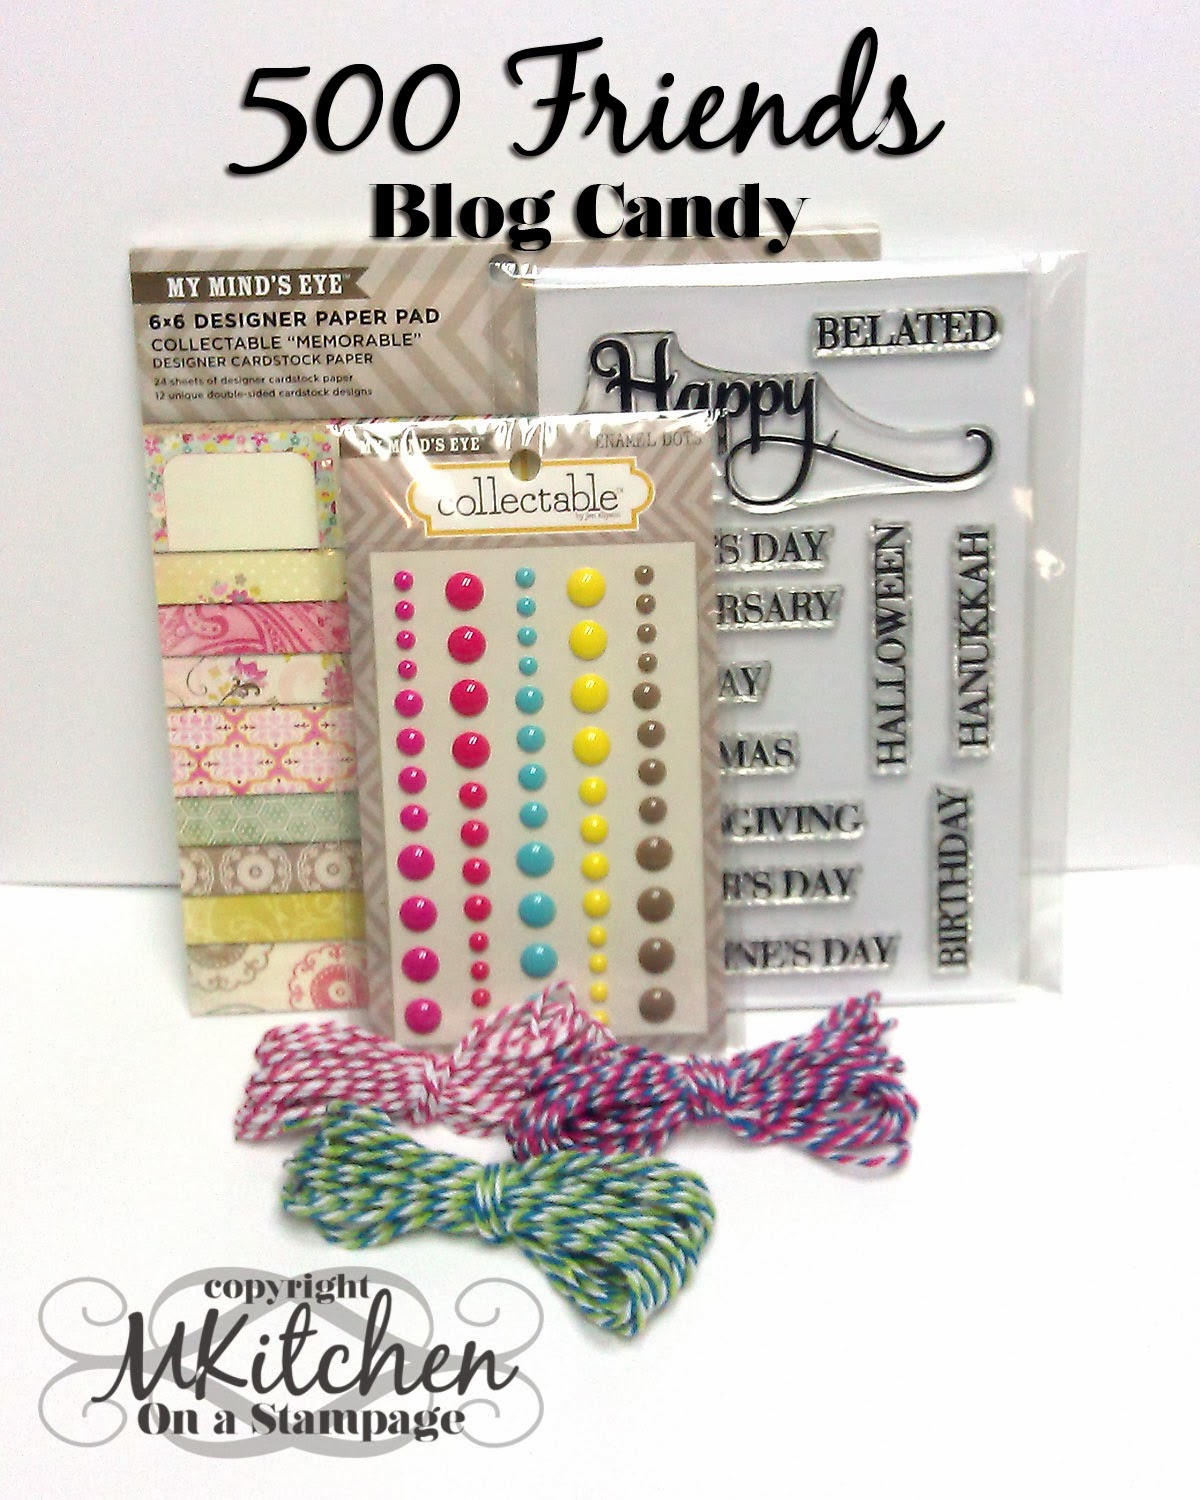 Great Blog Candy!